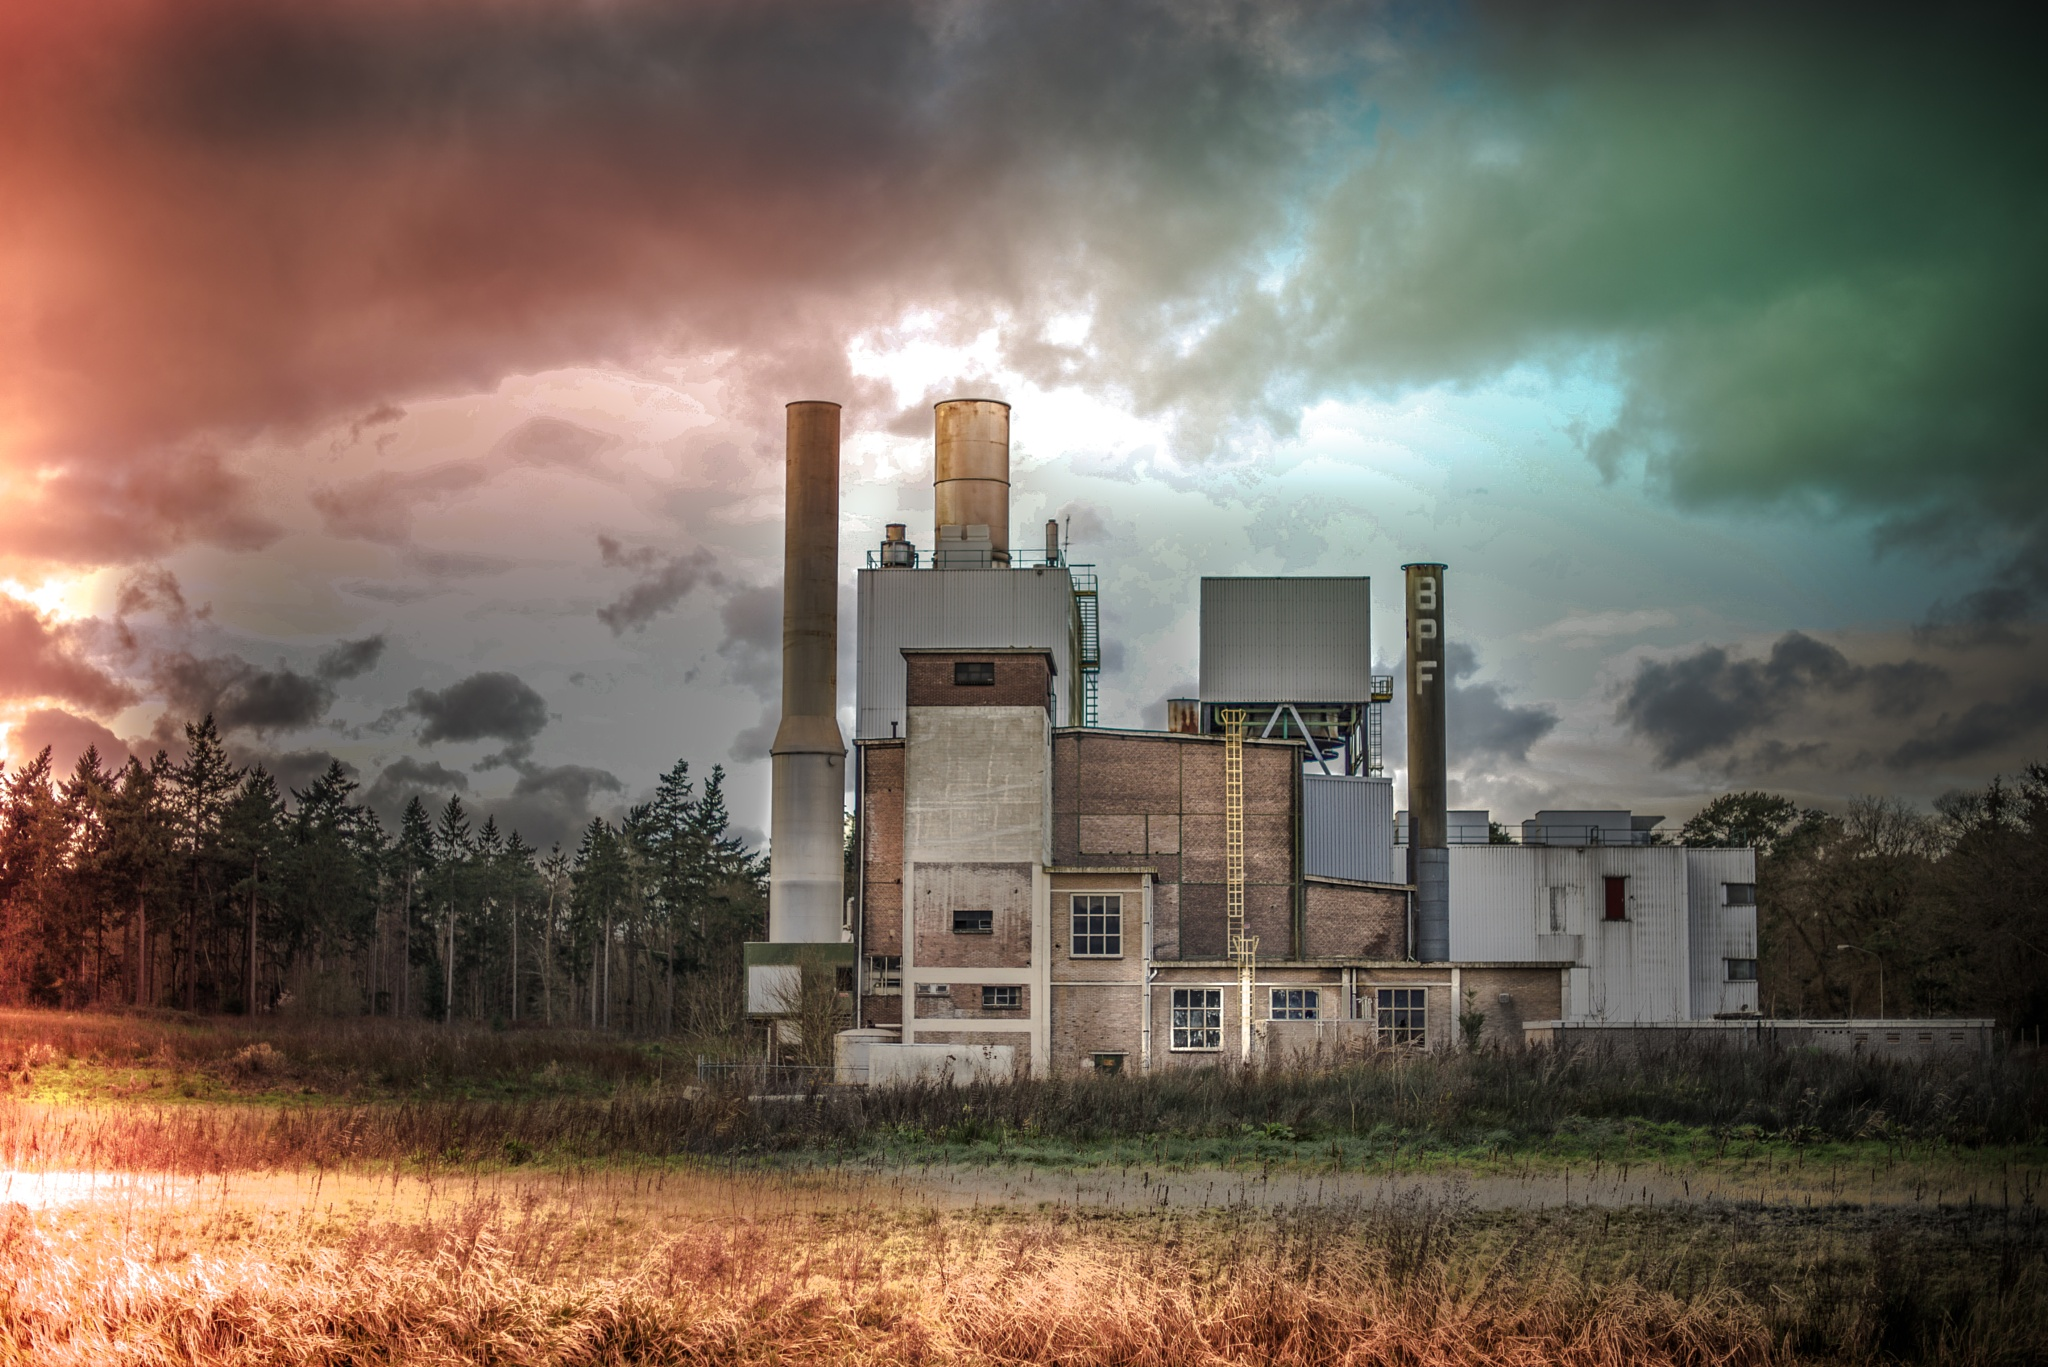 The Old Factory by Mirjam Slotman-Martin